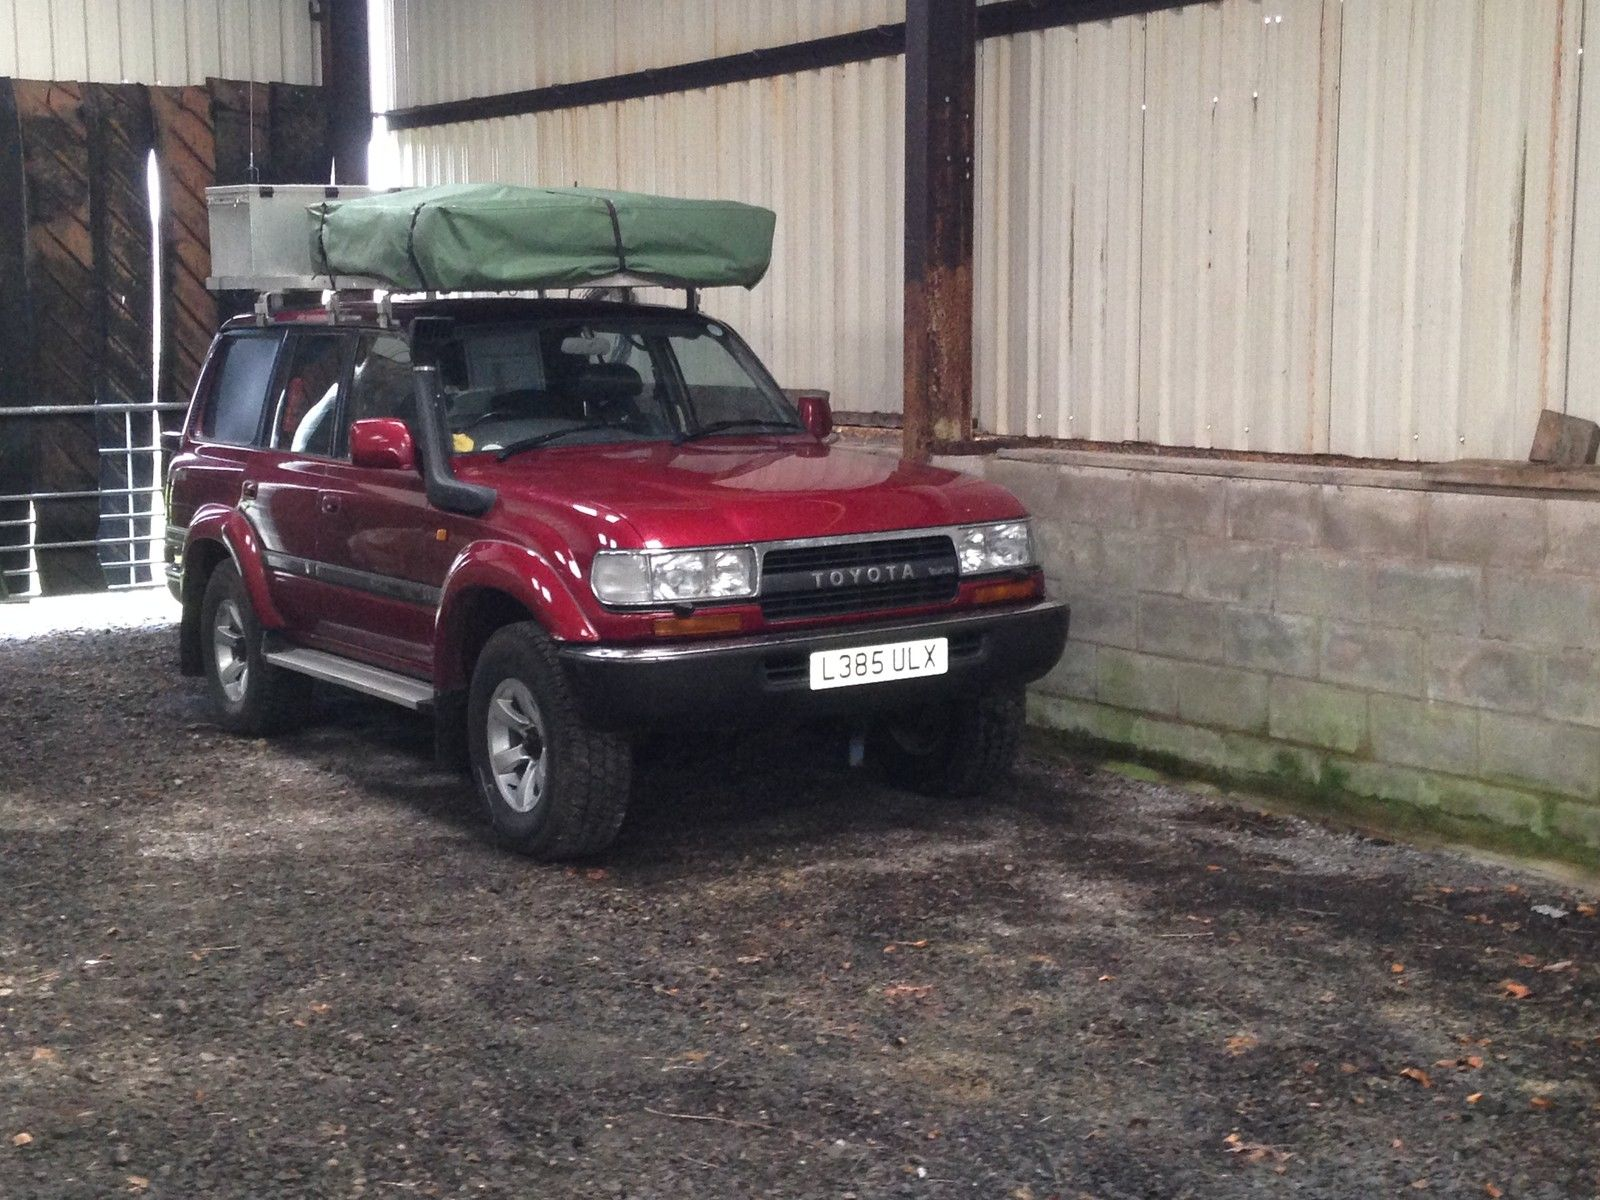 Toyota Land Cruiser Overland 4×4 – UK – £16,995